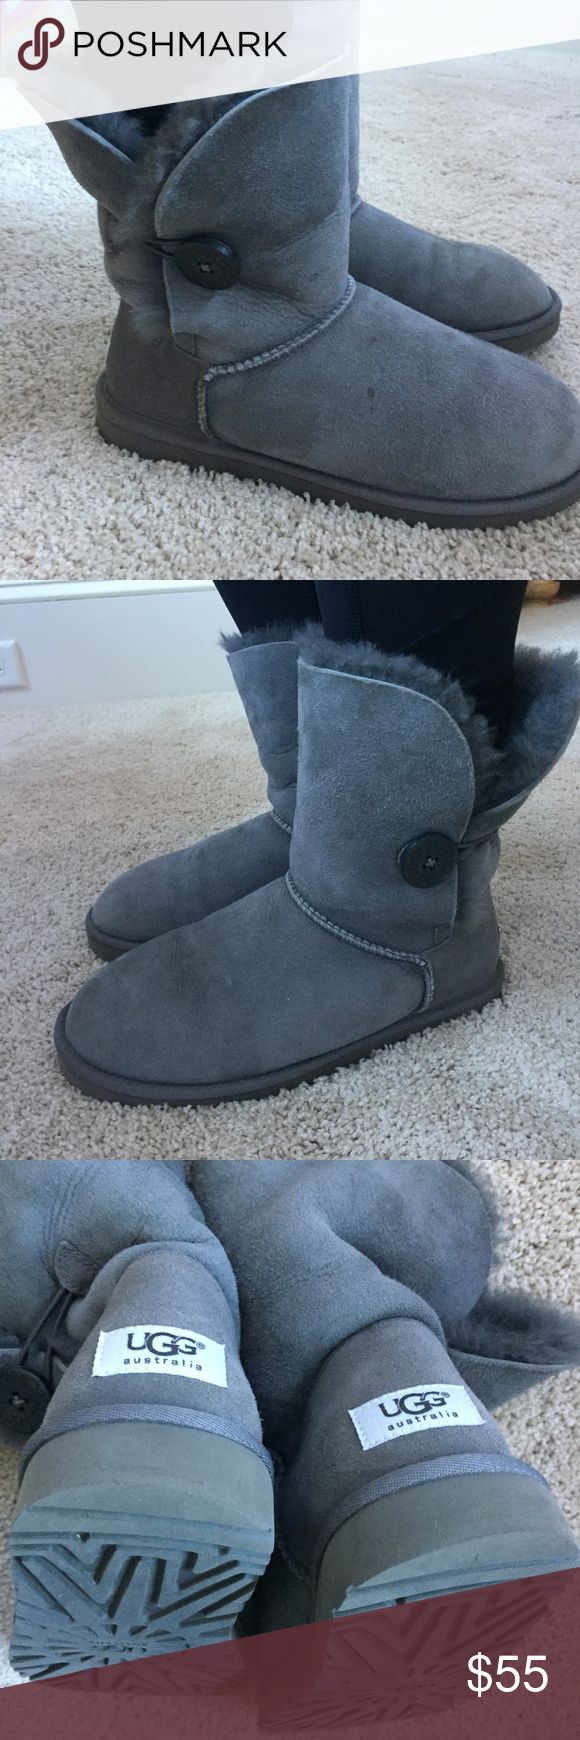 UGG Bailey Button Boots in Grey ✨ Women's size 8 Bailey Button UGGs ✨ Professionally scotchguarded for water resistant by local professional shoe shop  ✨ Wear in soles in toe and heels shown in pictures ✨ A few drop sizes stains on top of right boot shown in picture.  ✨ Reasonable offers always accepted ✨ Purchased at Nordstrom UGG Shoes Winter & Rain Boots